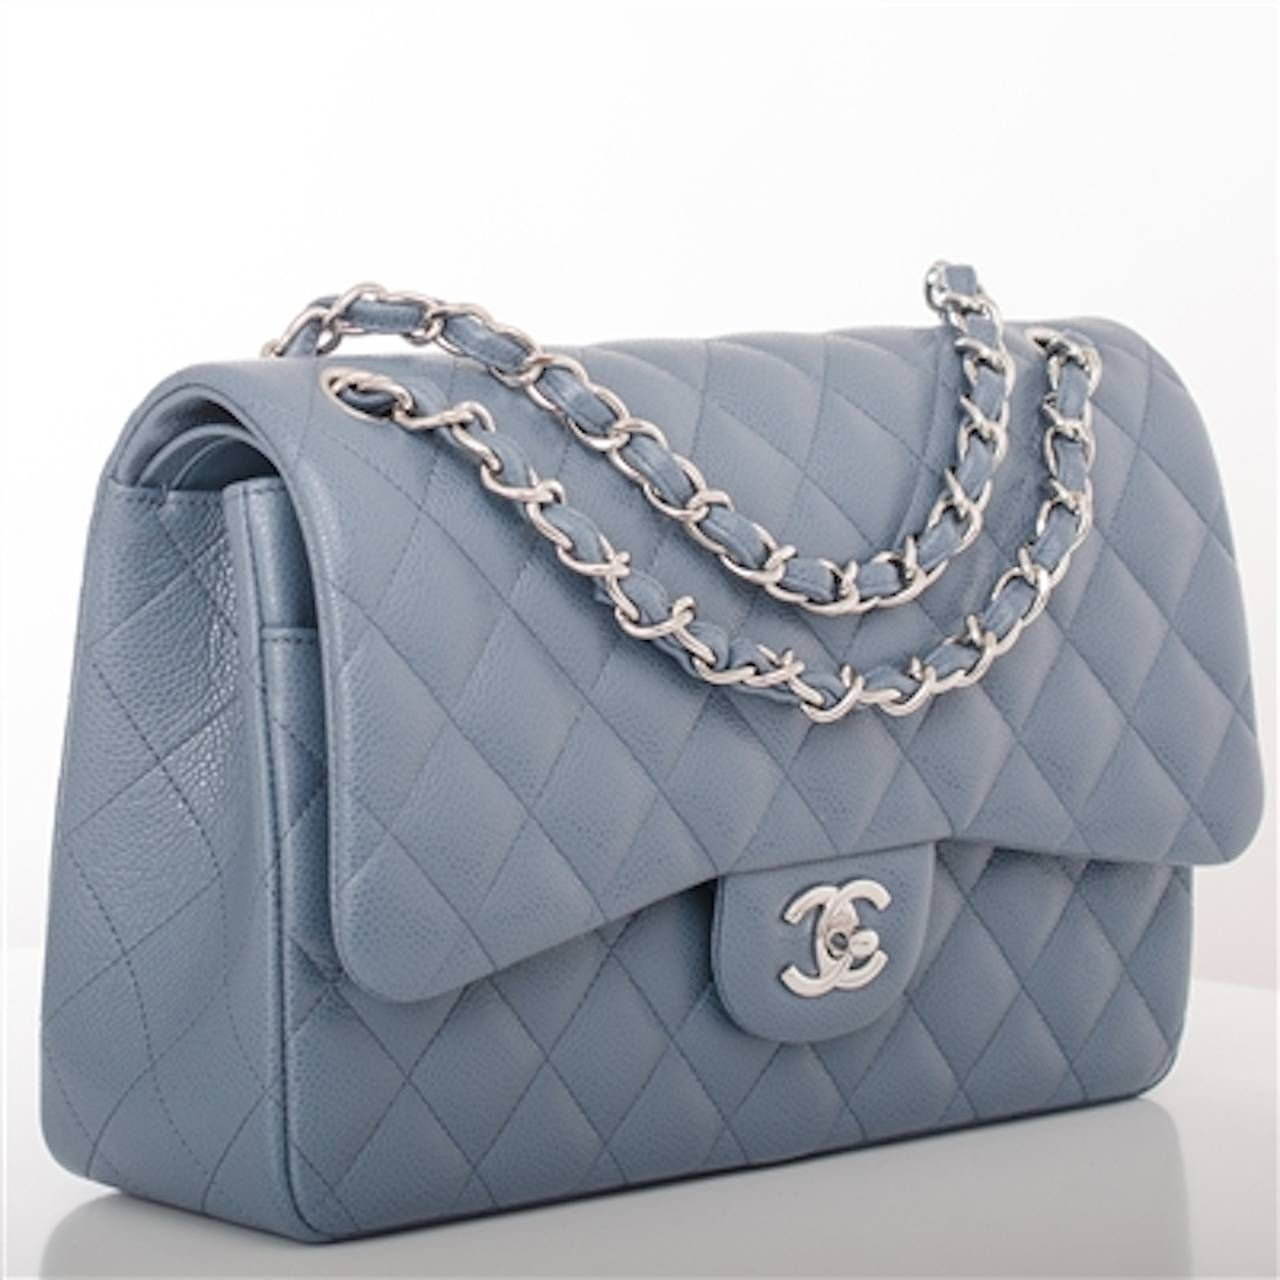 3de809d56046 Chanel Blue Quilted Caviar Jumbo Classic 2.55 Double Flap Bag | 1stdibs.com